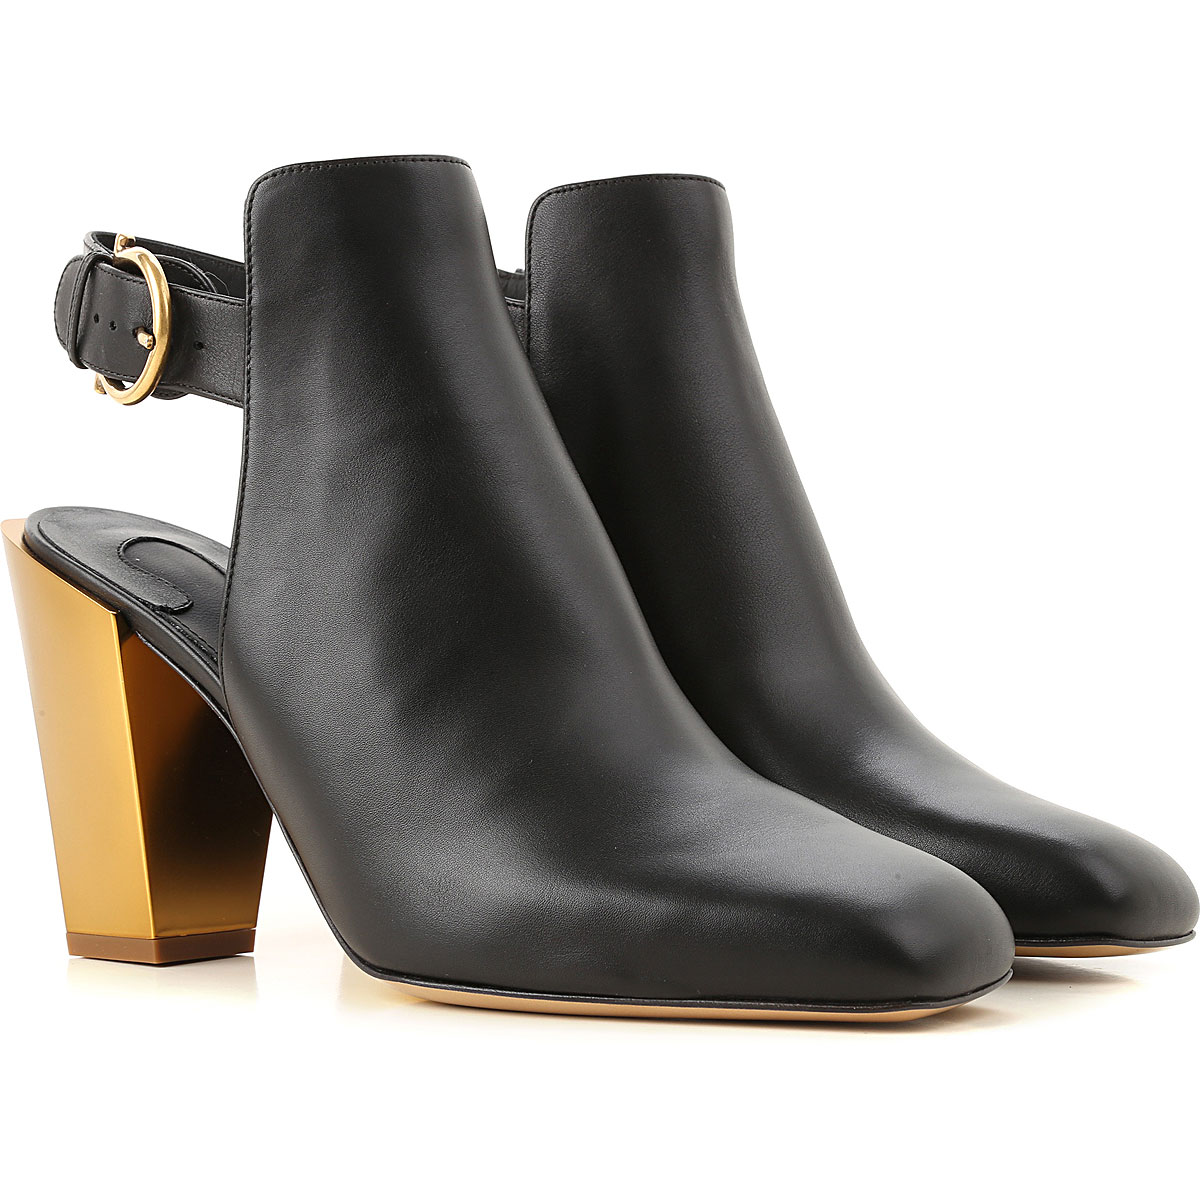 Salvatore Ferragamo Boots for Women, Booties On Sale in Outlet, Black, Leather, 2019, 5.5 6 7 8.5